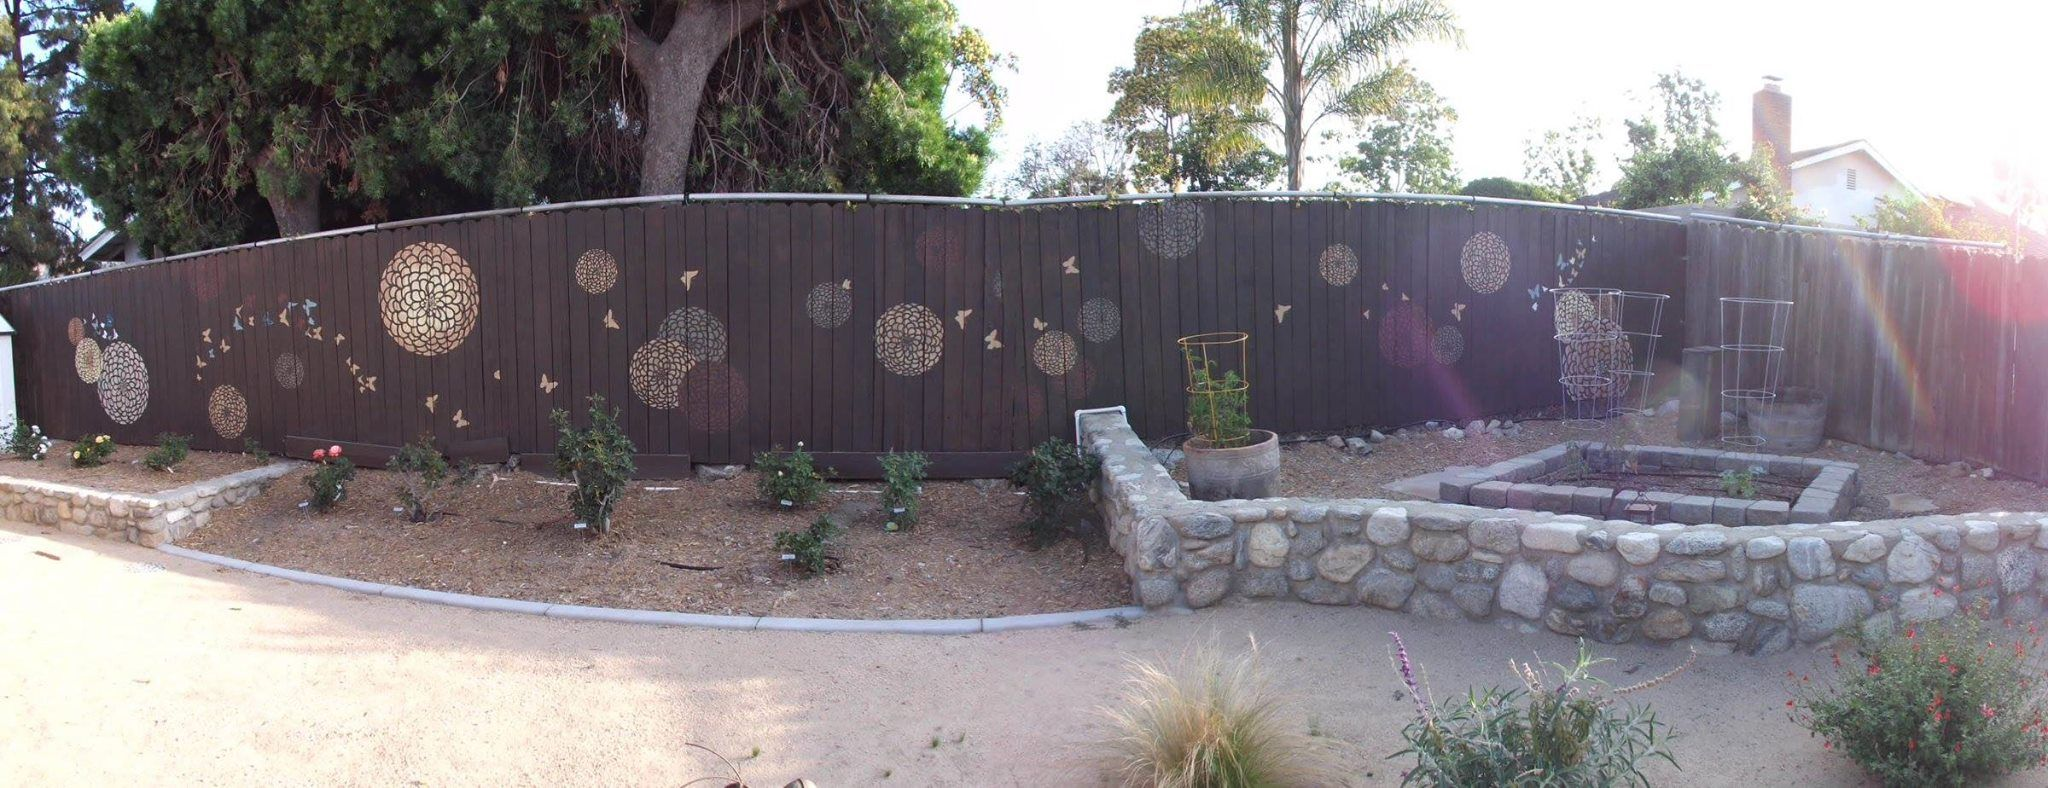 """FAN-tastic Stenciling! """"We love your stencils. We are in Southern California and have been working on a drought tolerant landscape. Using the stencils on the fence has brightened up the look a bit. We get different segment views of the fence from inside the house depending on what room we are in."""" ~Lori >> Buy the stencil:  http://www.cuttingedgestencils.com/flower-stencil-zinnia-wall.html?utm_source=JCG&utm_medium=Pinterest%20Comment&utm_campaign=Zinnia%20Grande%20Flower%20Stencil%20"""